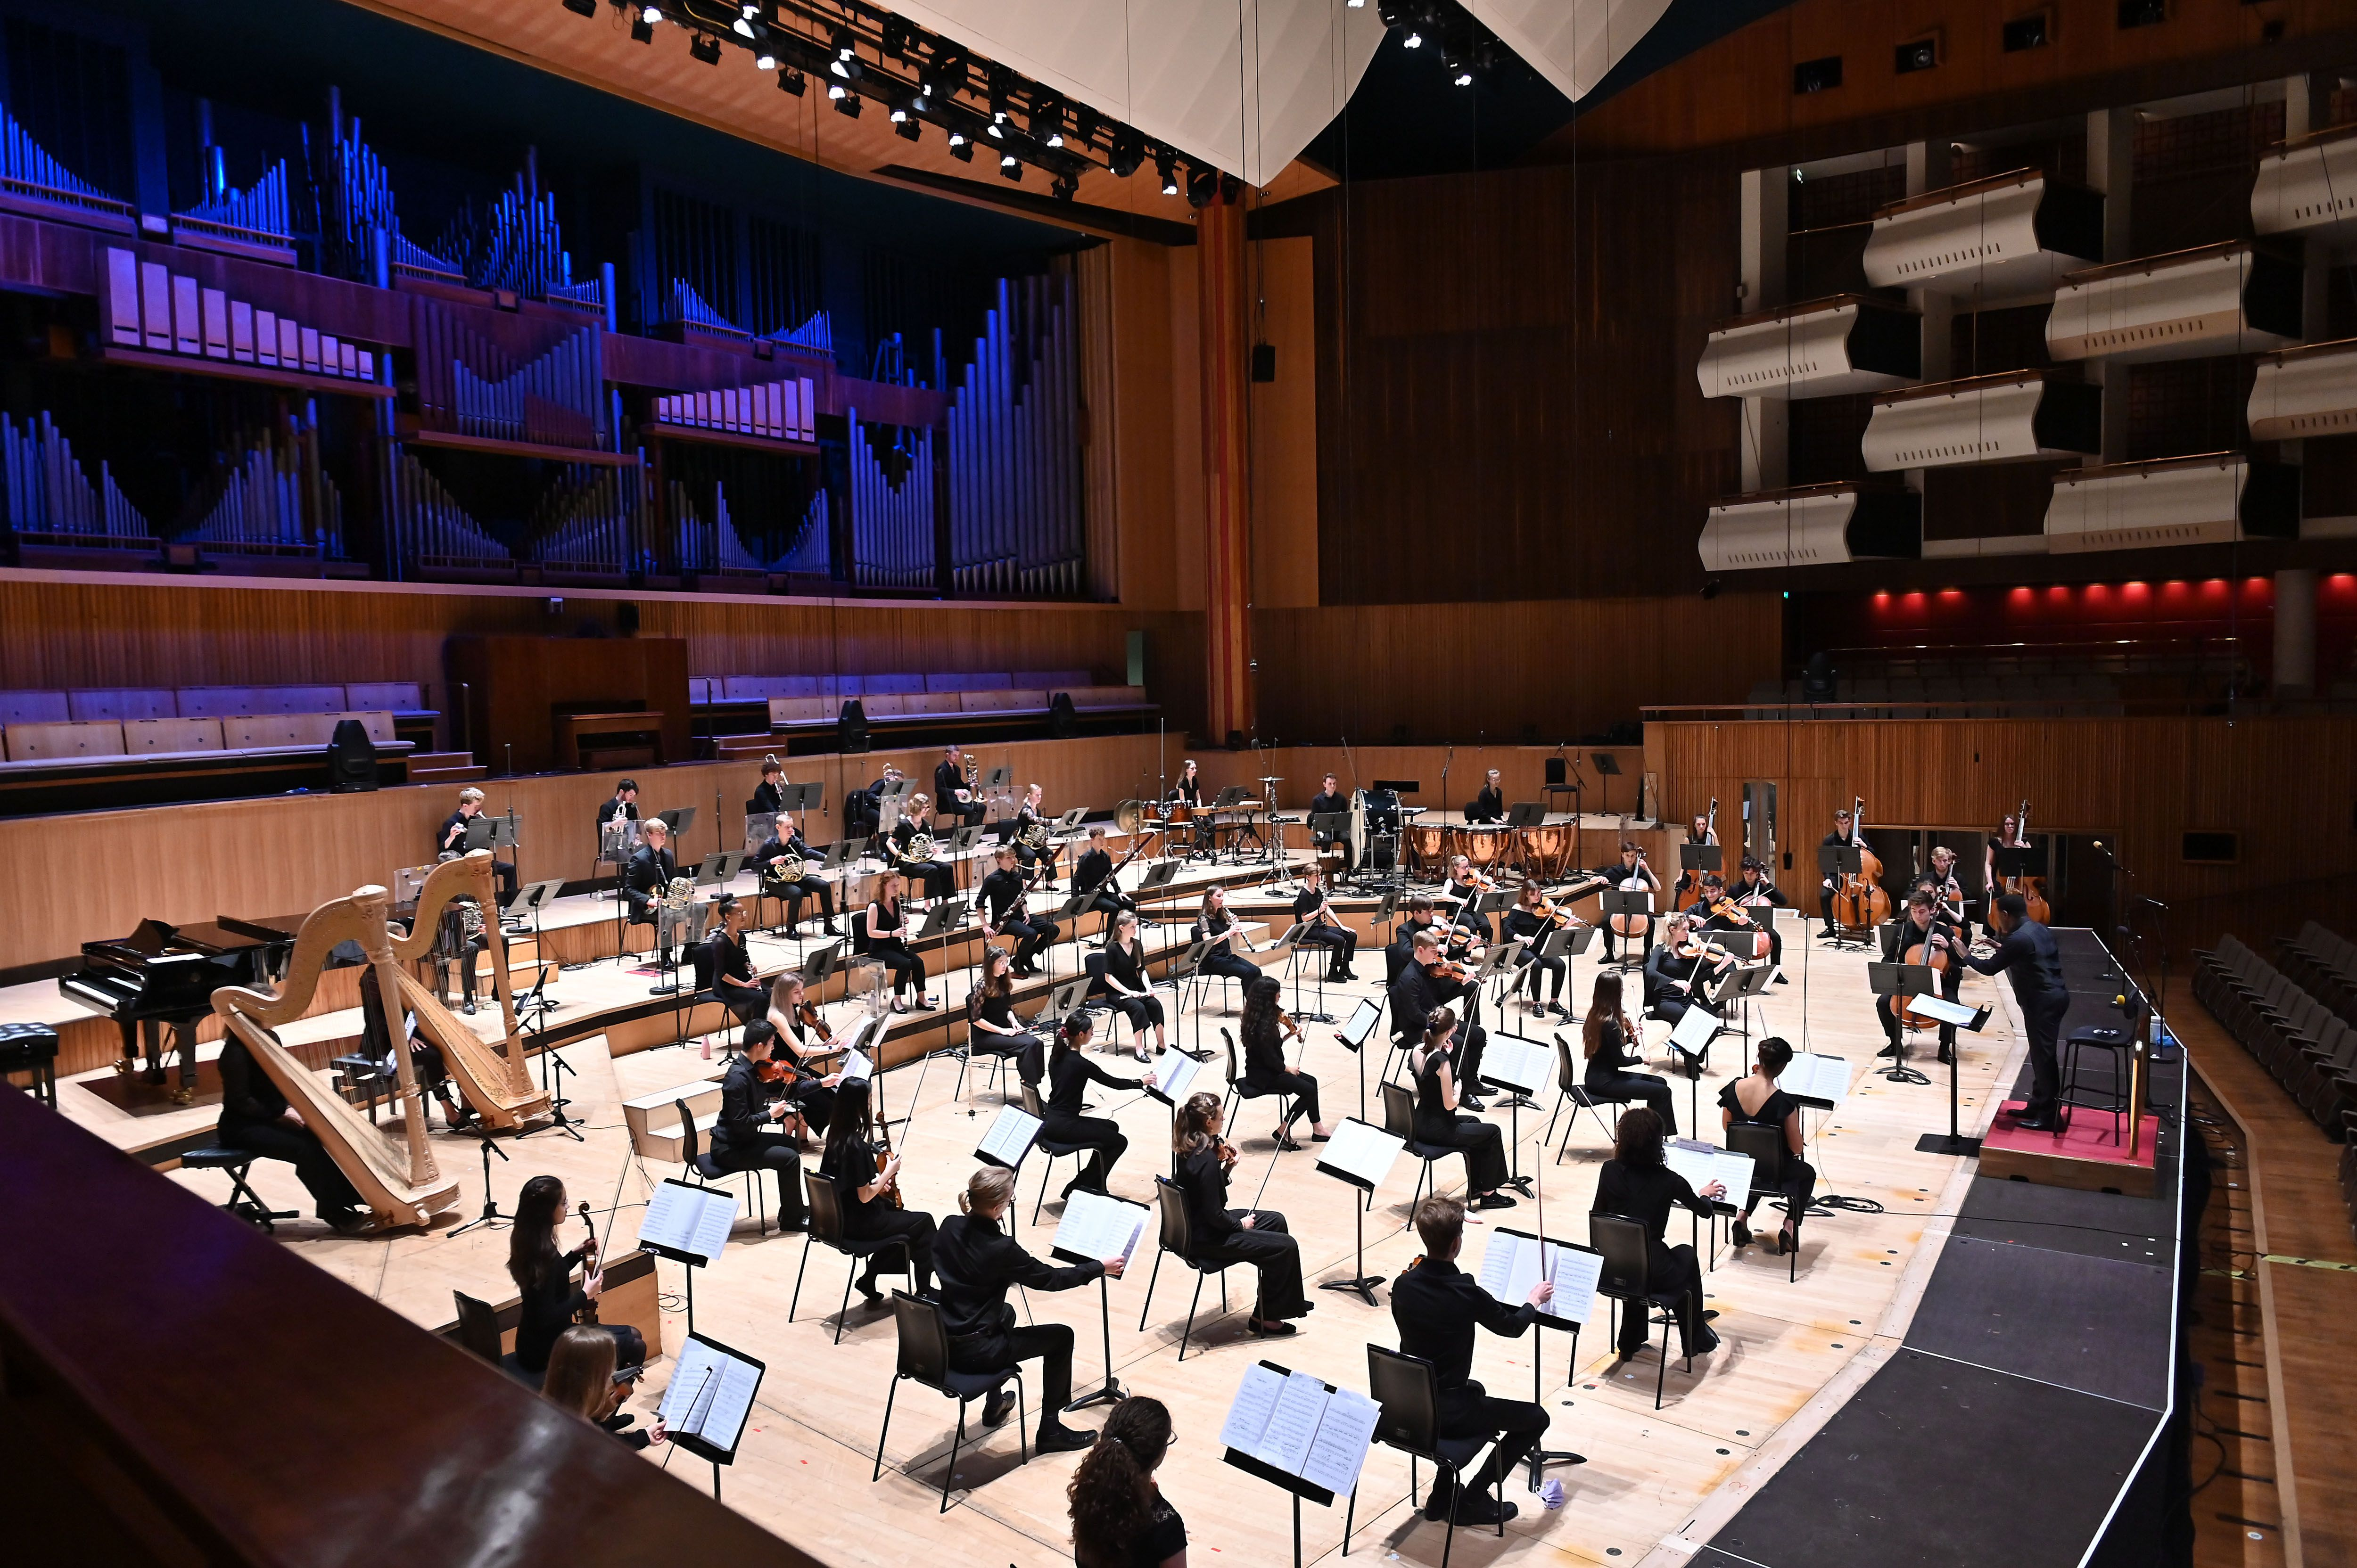 NYO concert at the Royal Festival Hall on 31 July